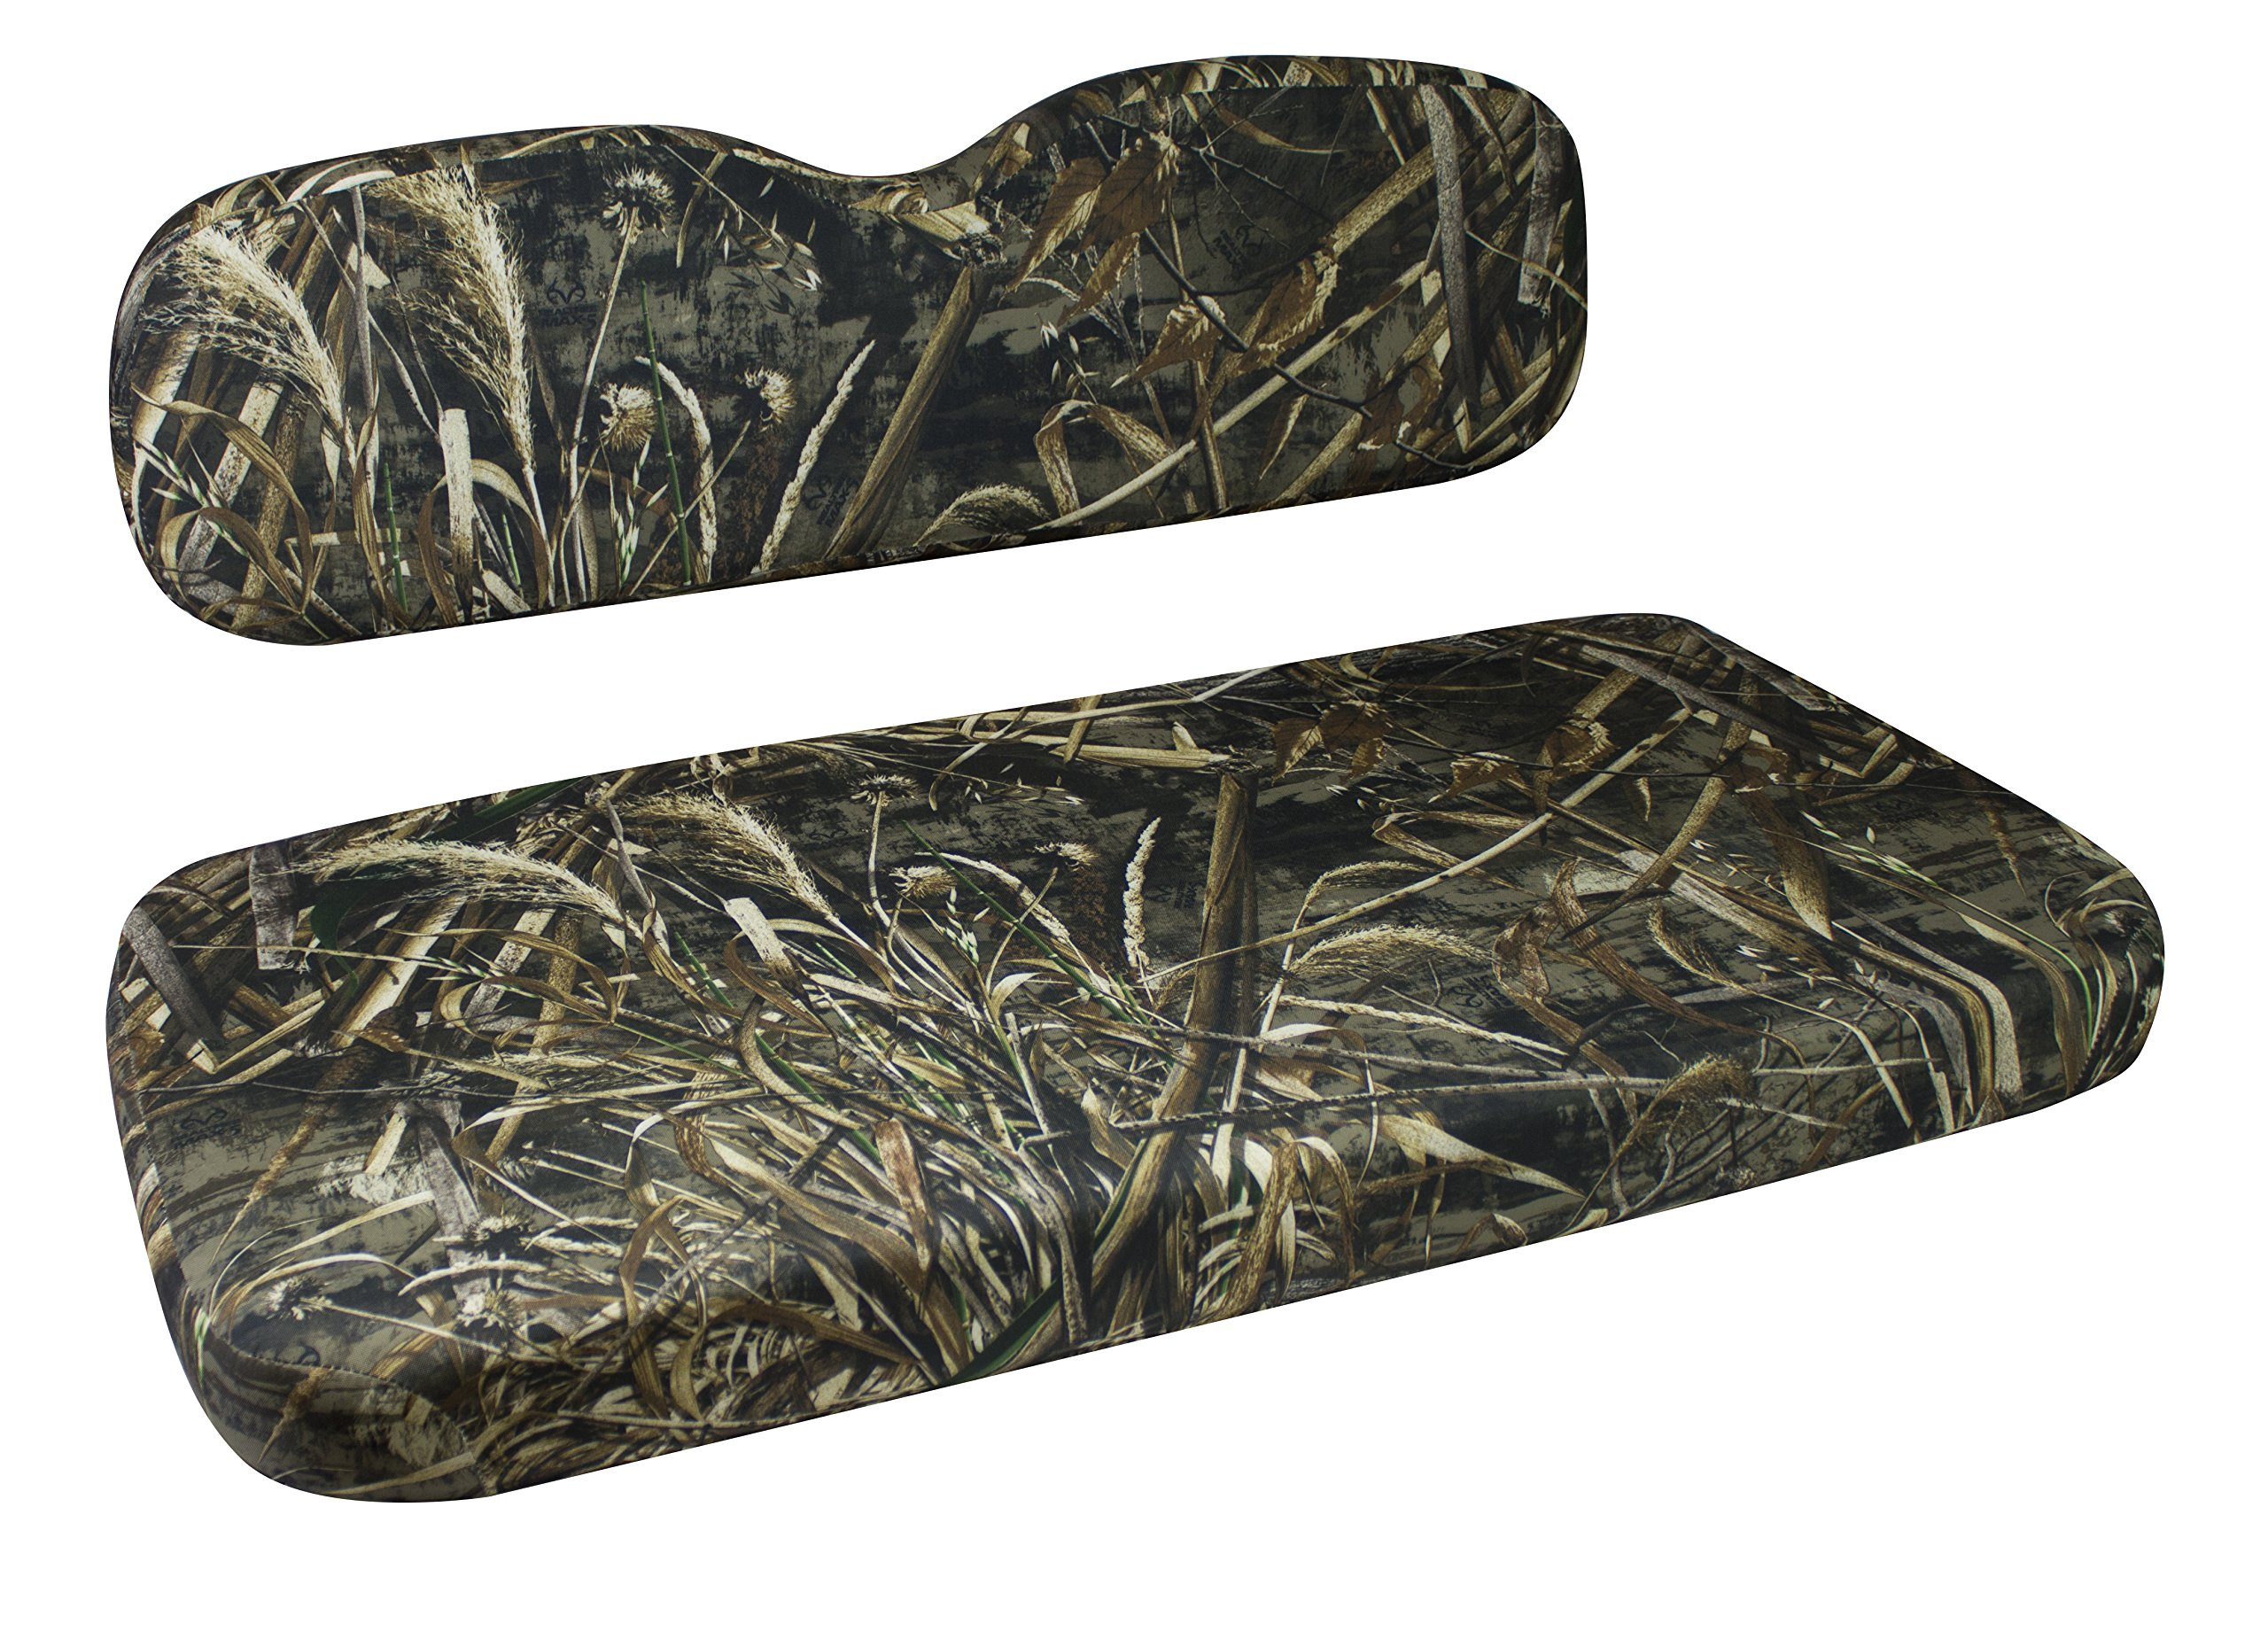 Wise WG004-733 EZGO TXT / Medalist Golf Cart Front Seat Complete Set, Max 5 Camouflage